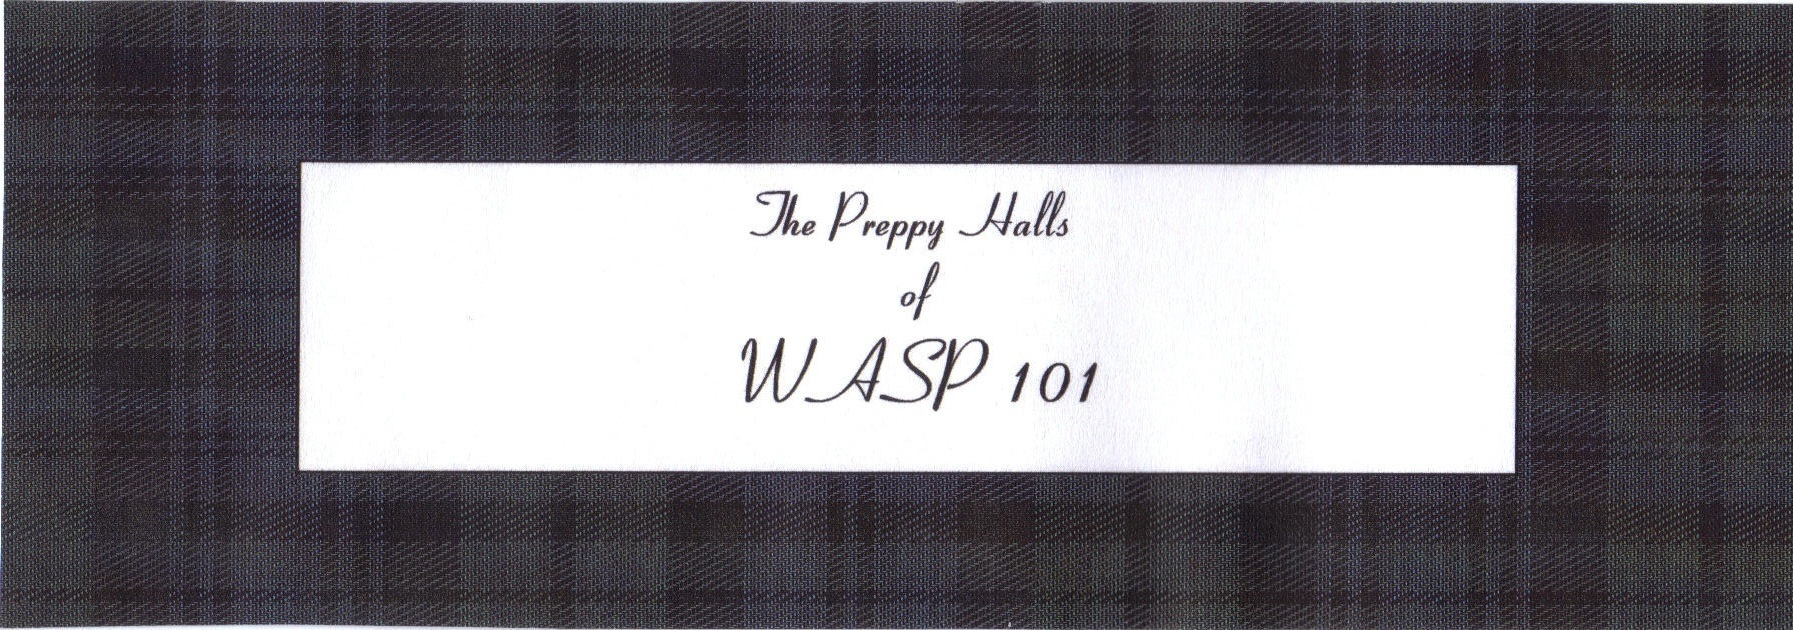 The Preppy Halls of WASP 101